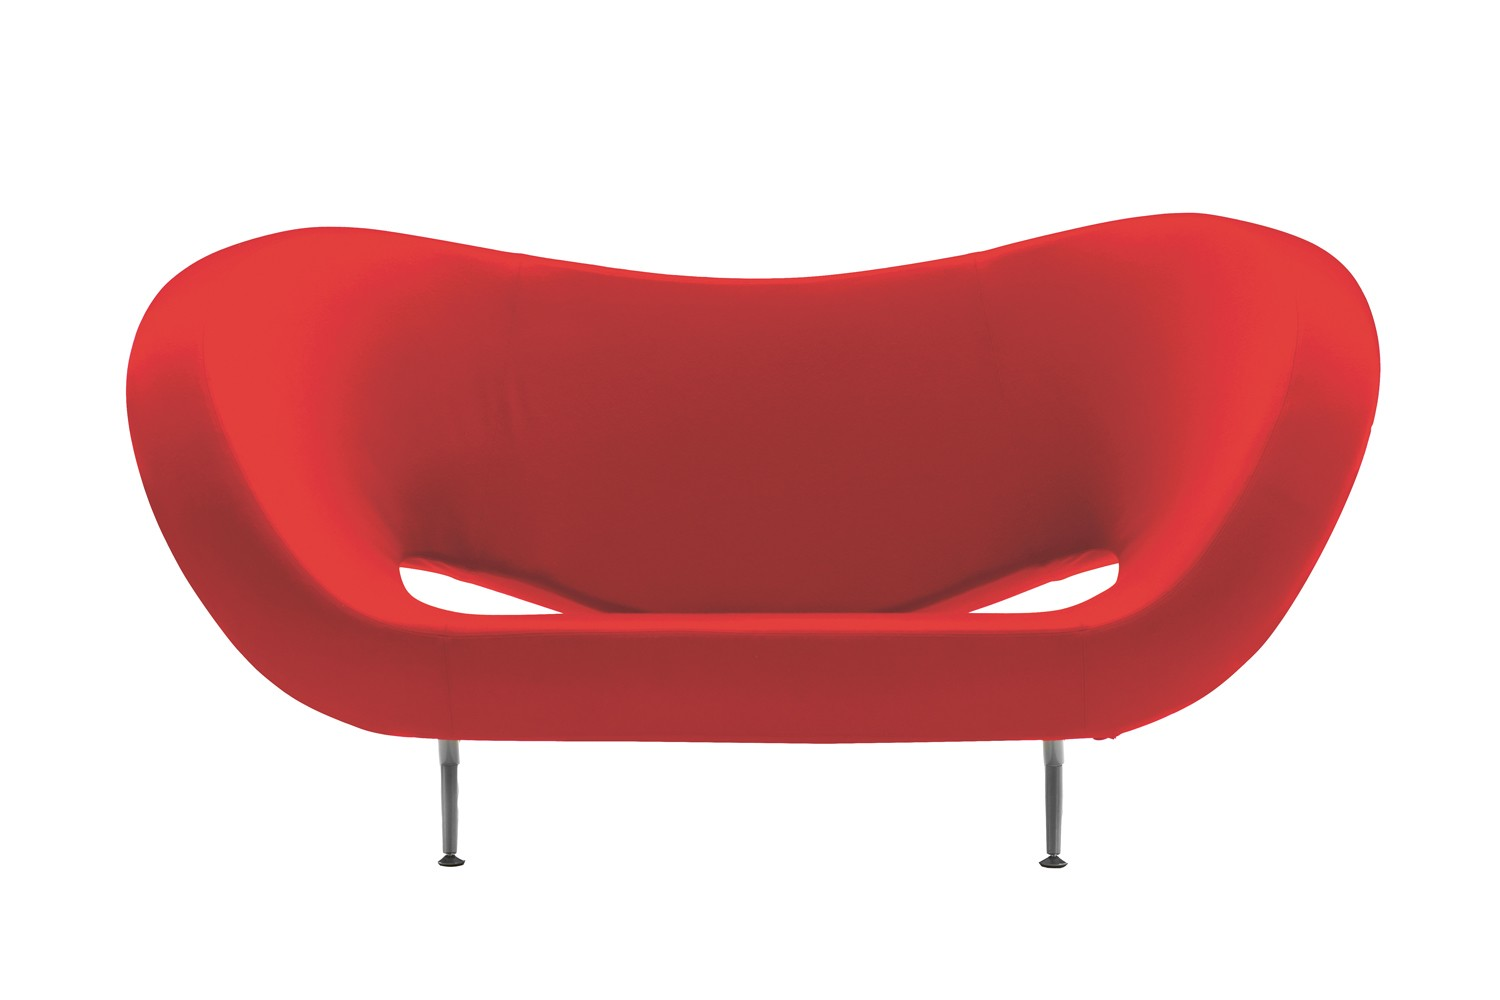 Victoria and Albert Sofa 255, A0867 - Divina 3 623 red